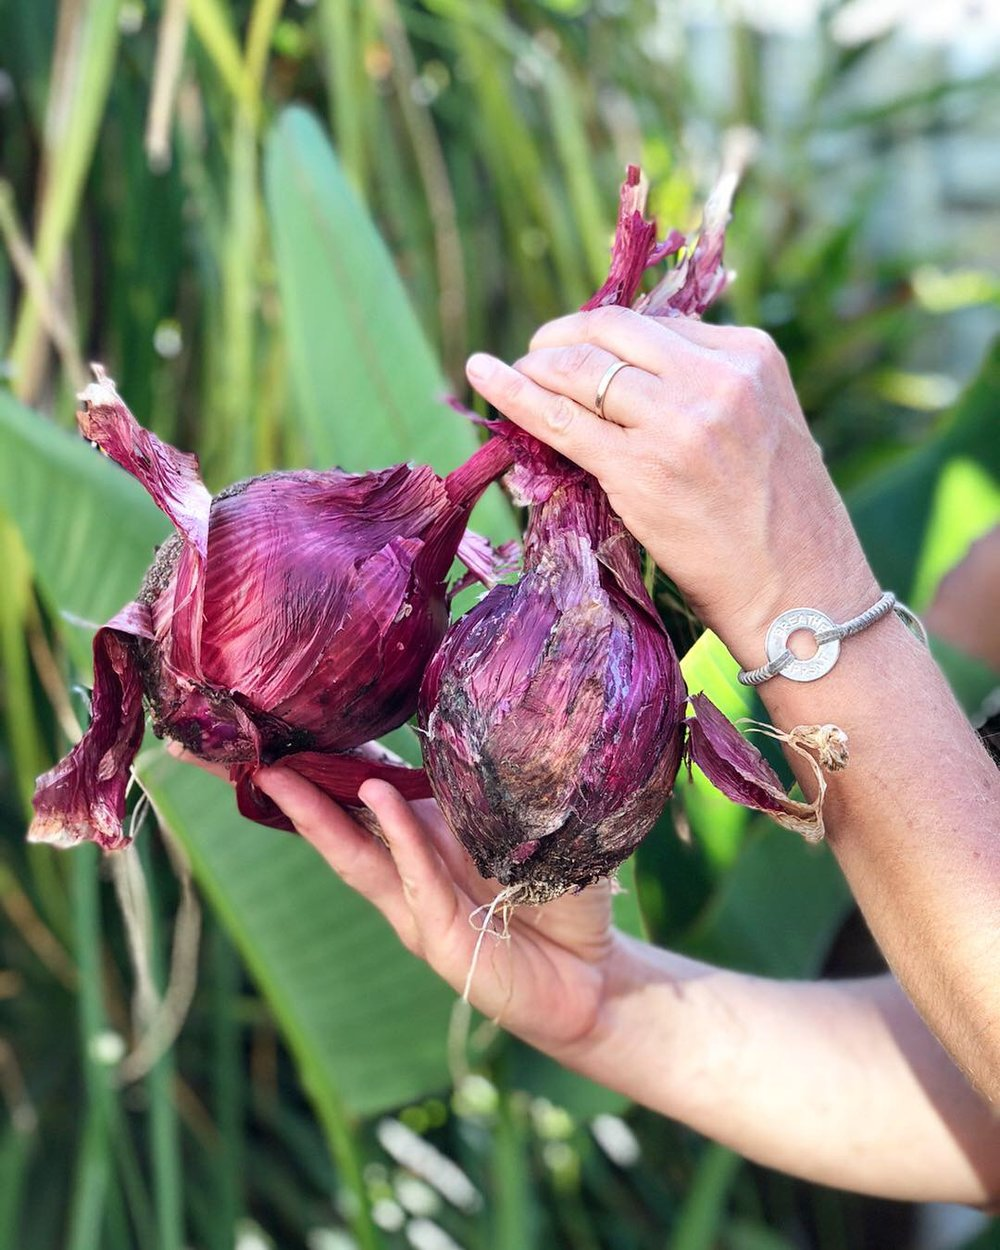 Red onions from our recent harvest. We pulled, cut and picked our dinner fresh out of the soil and the trees